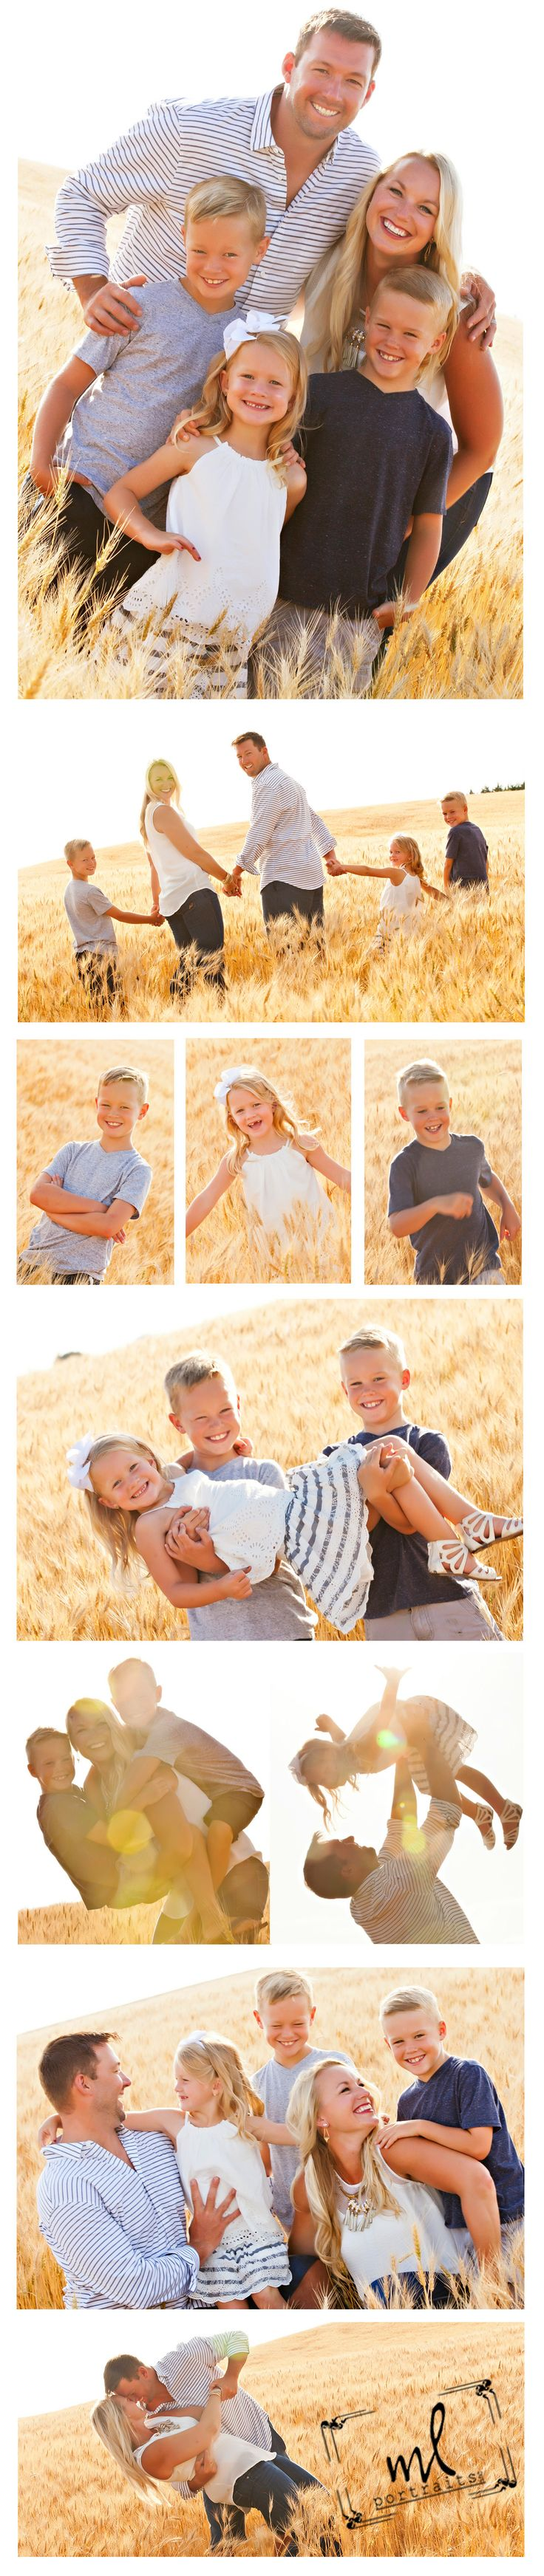 Photography | Family | Family Portraits | Outdoors | Families | Wheat Field | Families in Wheat | Children | Kids Photography | Candid Photos |